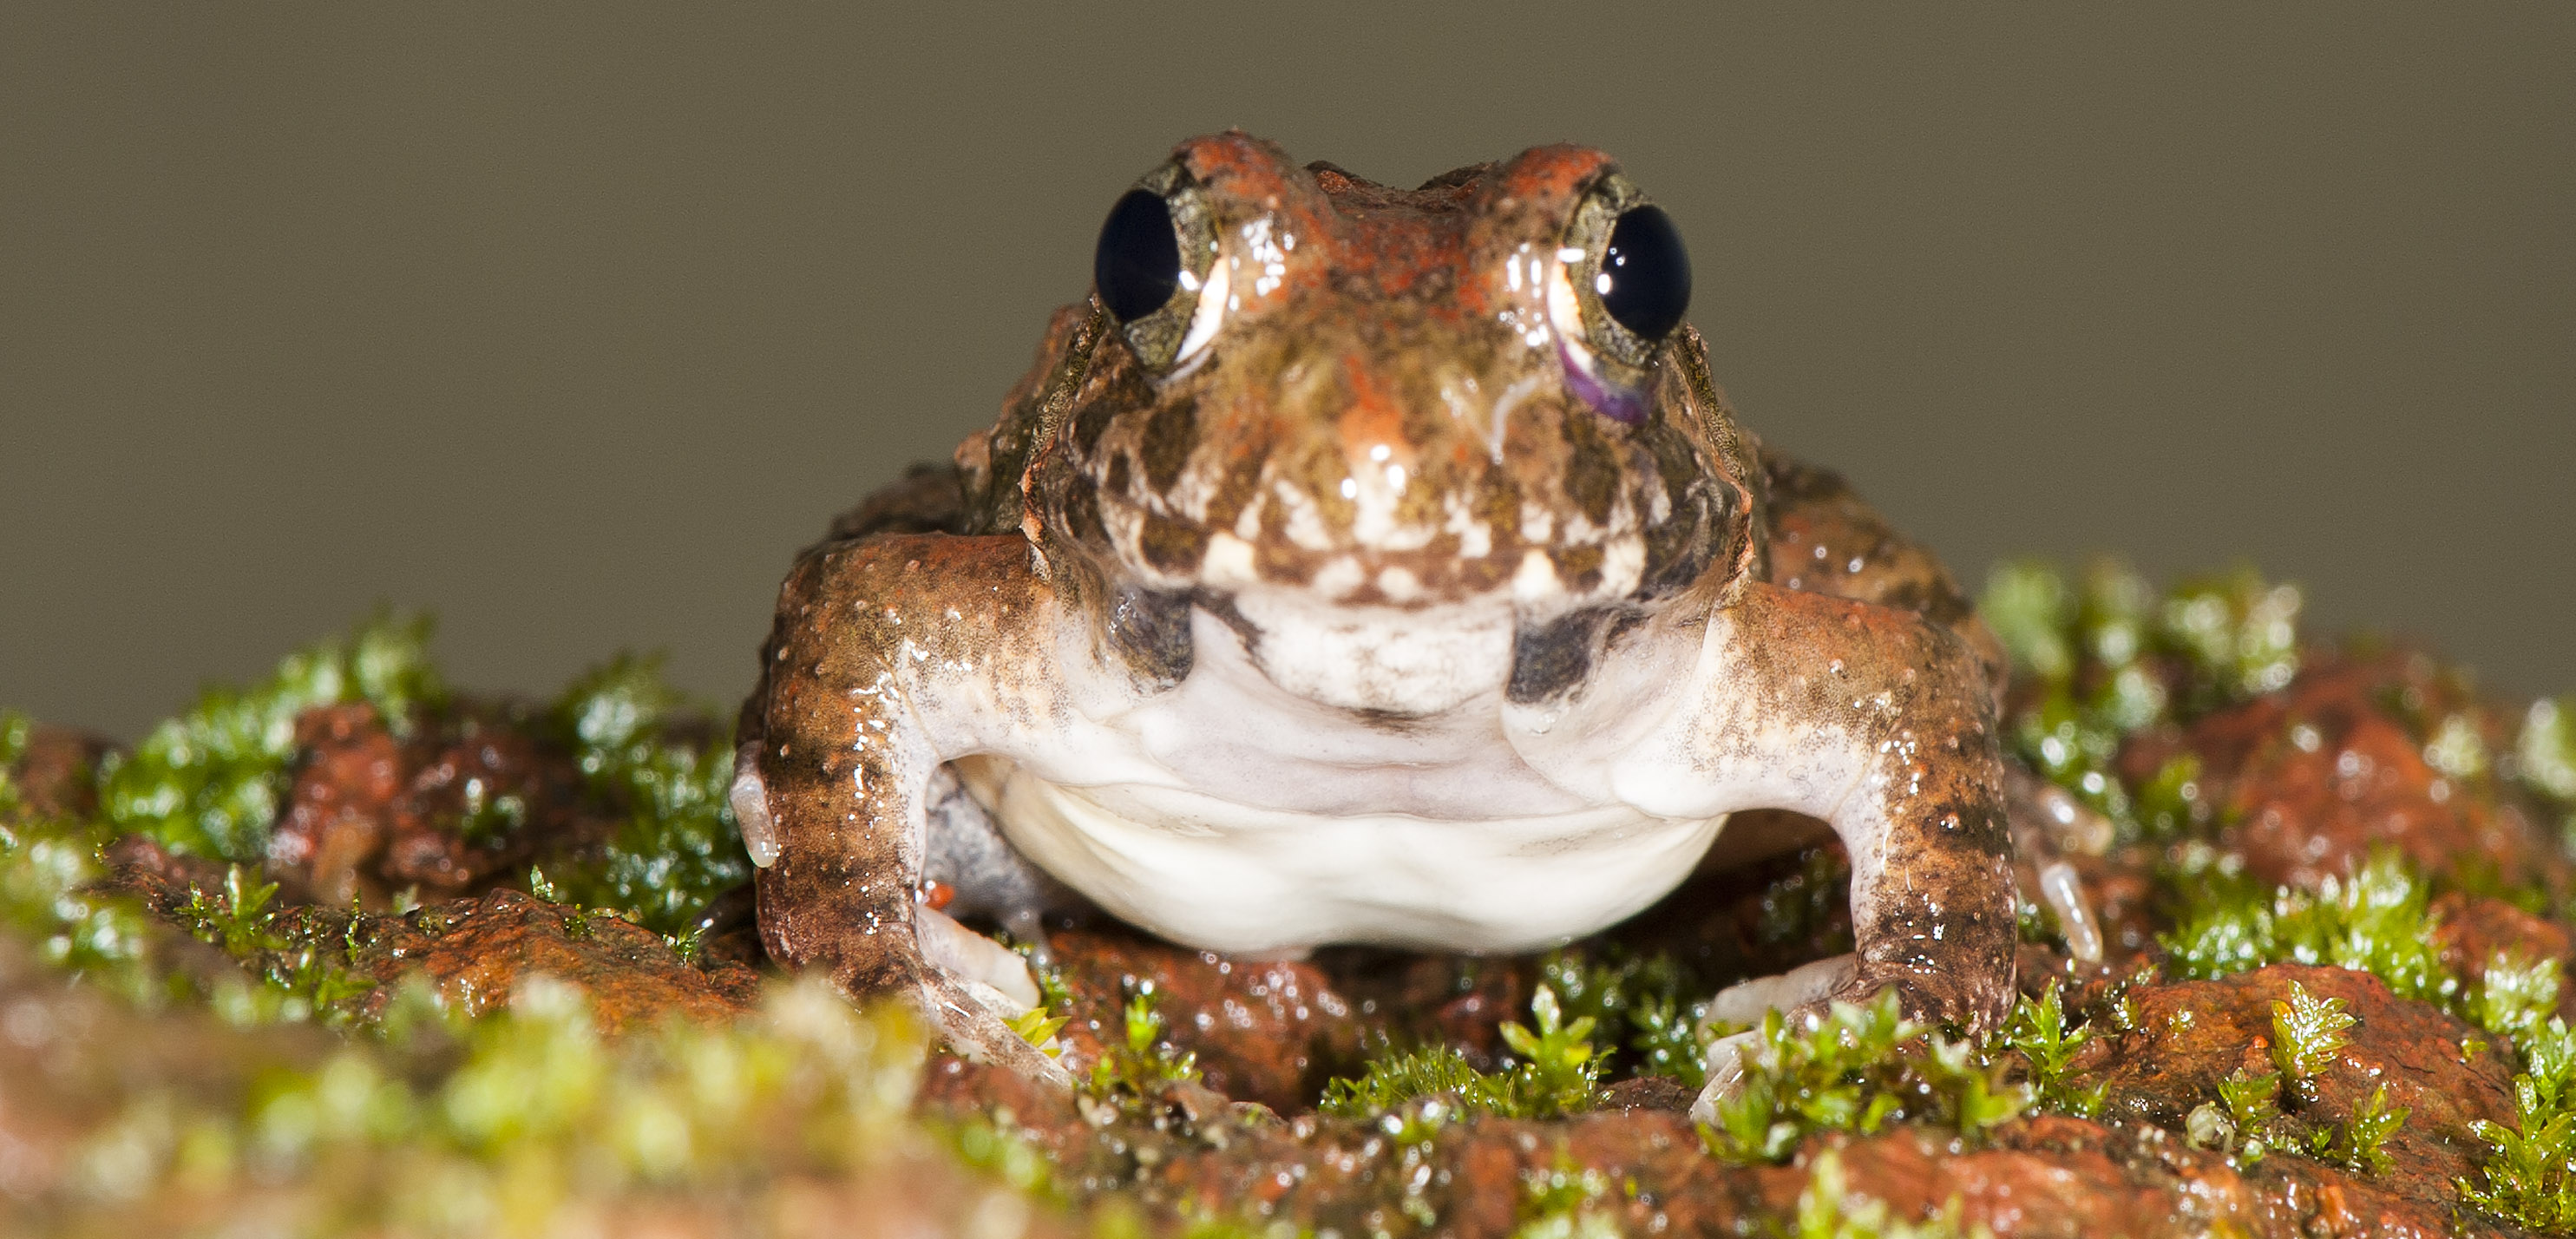 CEPF frog, named after the Critical Ecosystem Partnership Fund. (Photo credit: SD Biju).